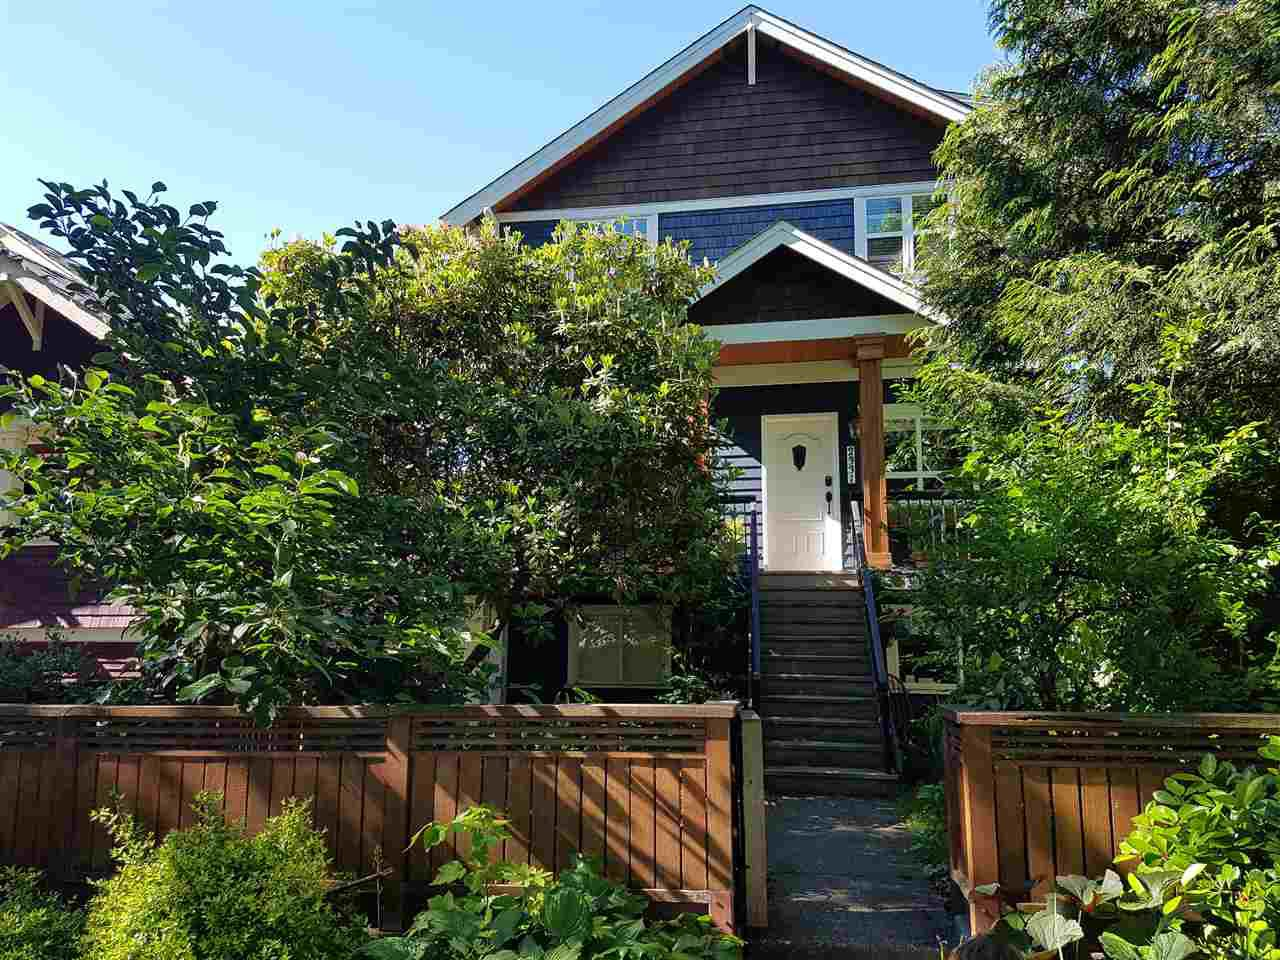 Main Photo: 2331 E 6TH Avenue in Vancouver: Grandview Woodland House for sale (Vancouver East)  : MLS®# R2398136